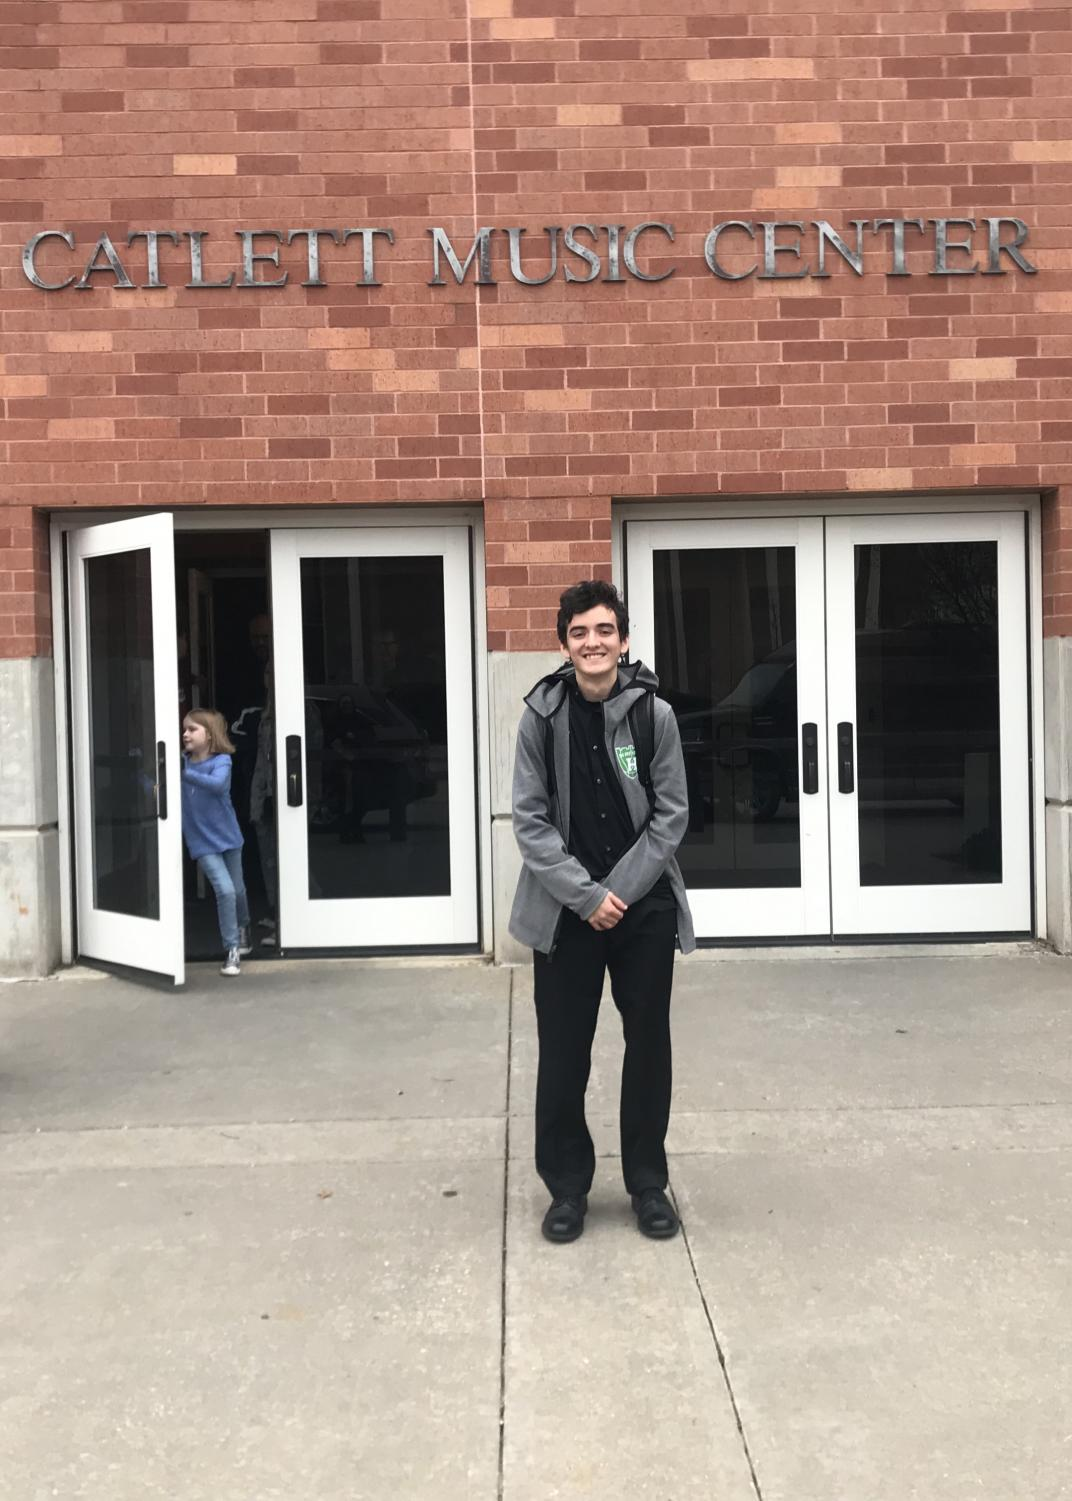 Ryan McLaughlin in front of the Catlett Music Center at the University of Oklahoma.